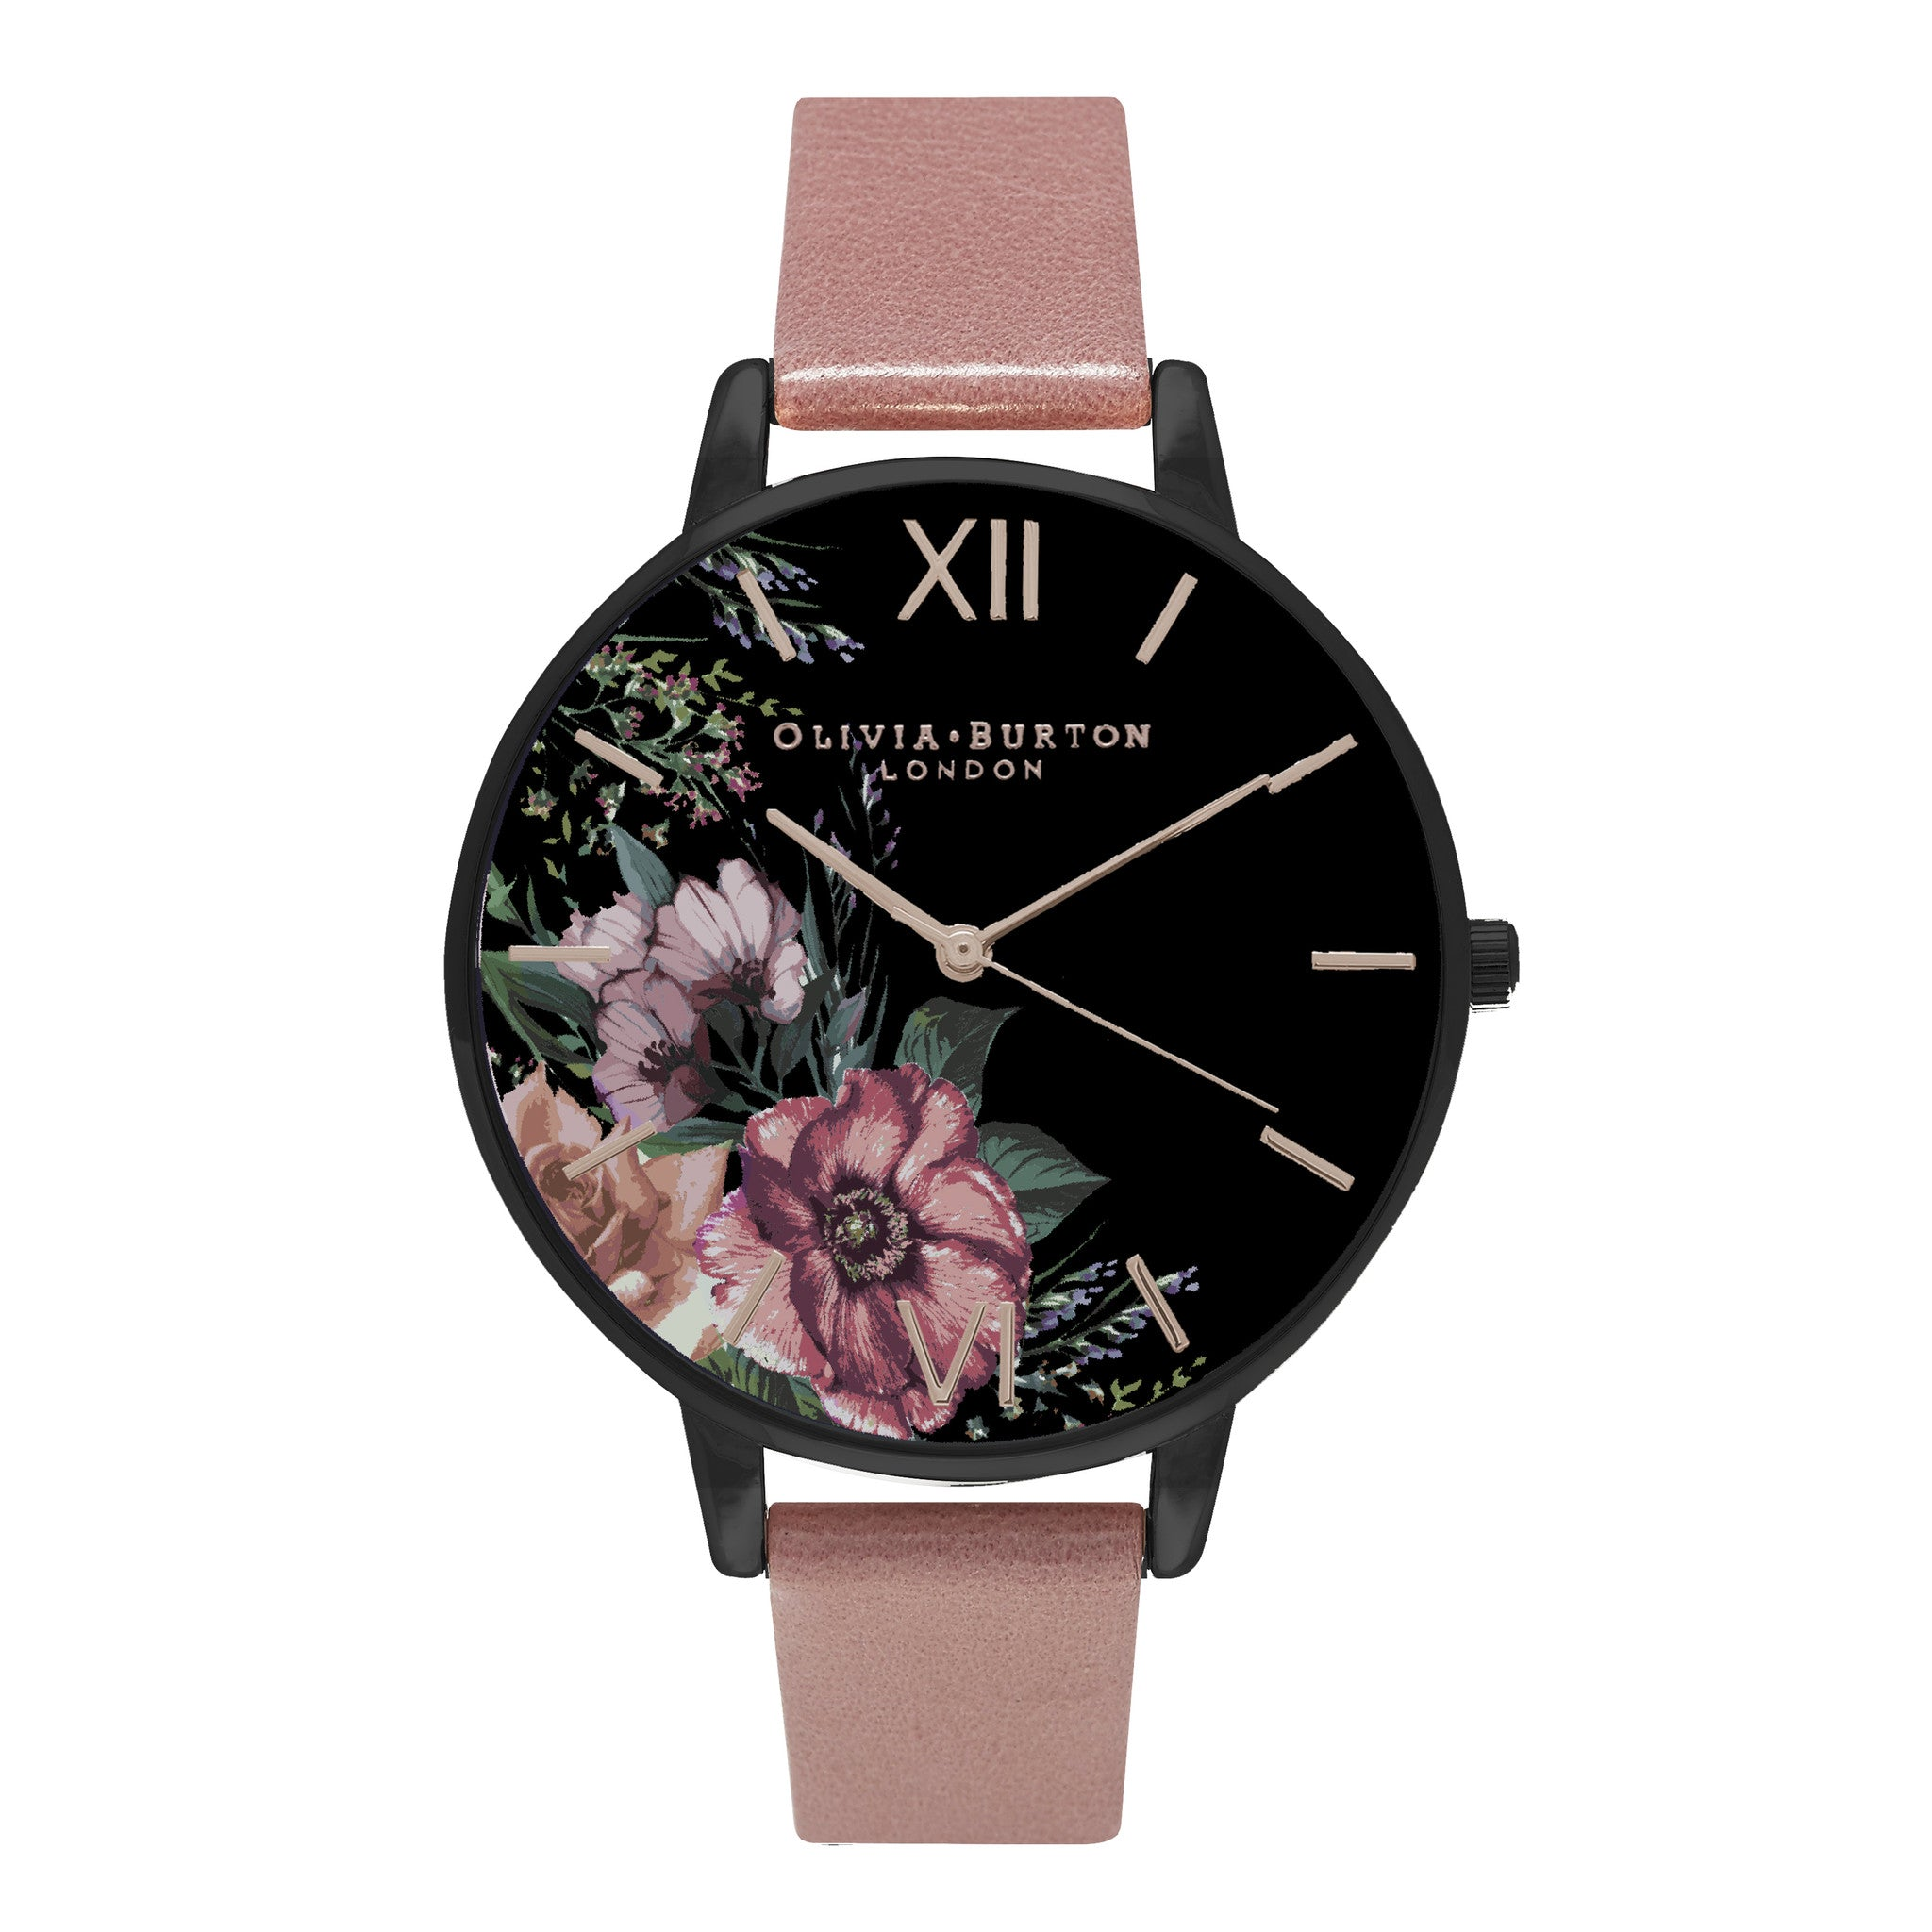 christian watch rose mr bellini tesori by marble peach paul products all d watches bondi gold